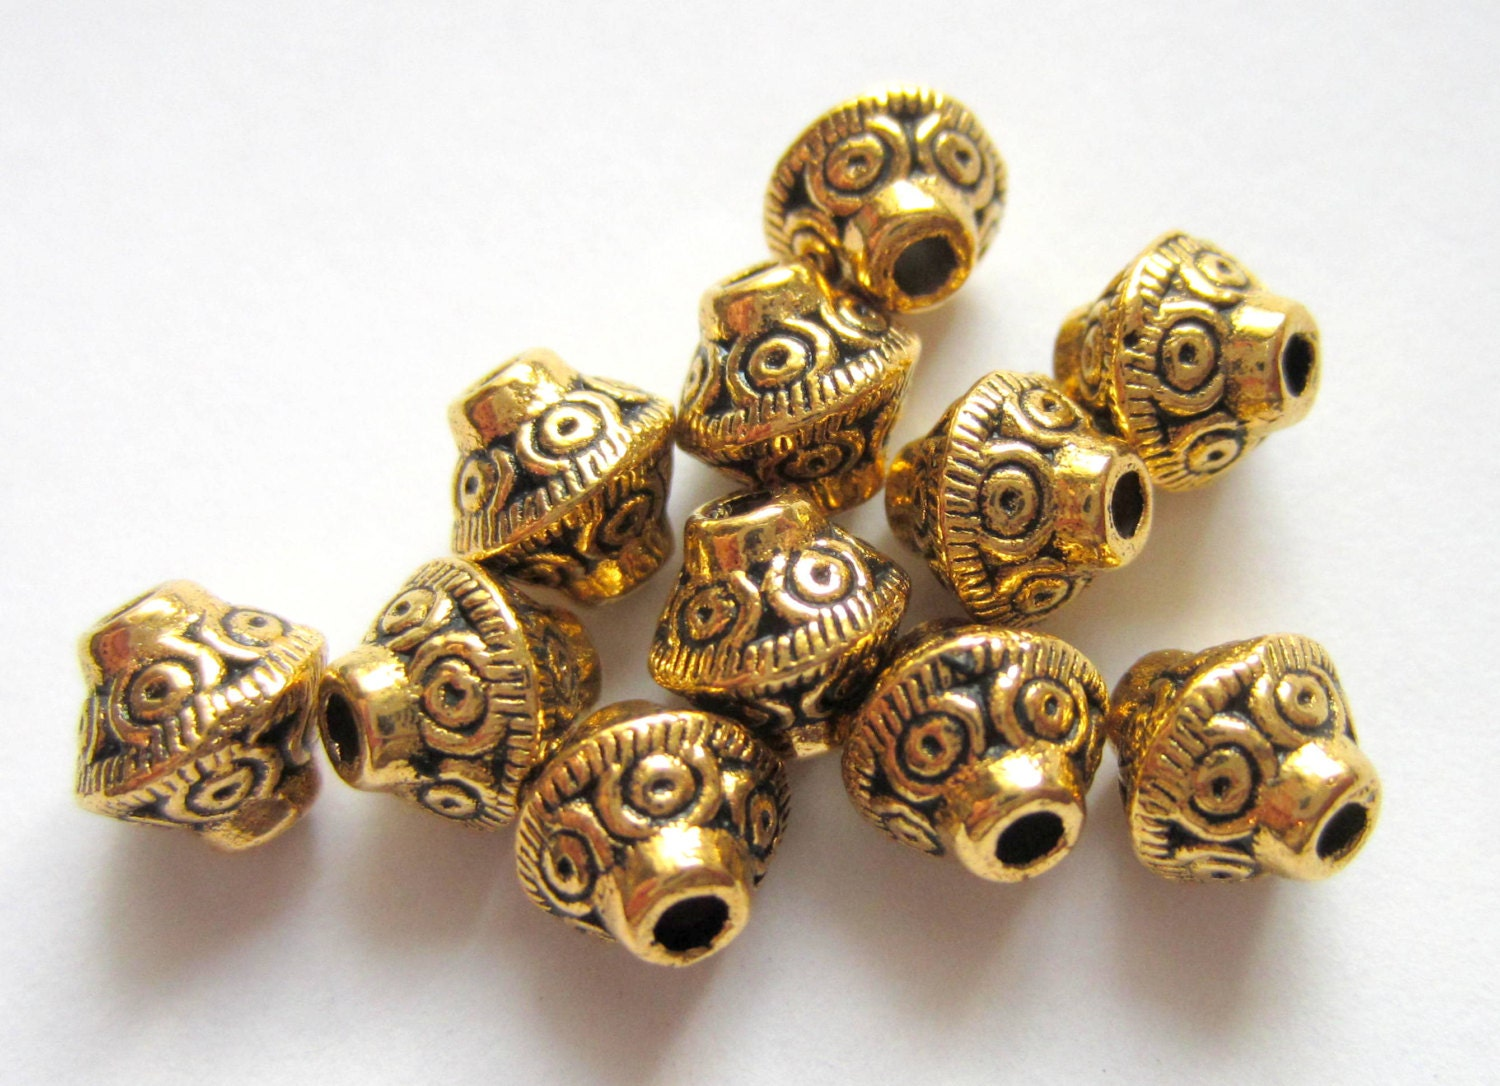 Ring In The Steampunk Decor To Pimp Up Your Home: 40 Antique Gold Beads Tibetan Spacer Beads 7mm X 6mm